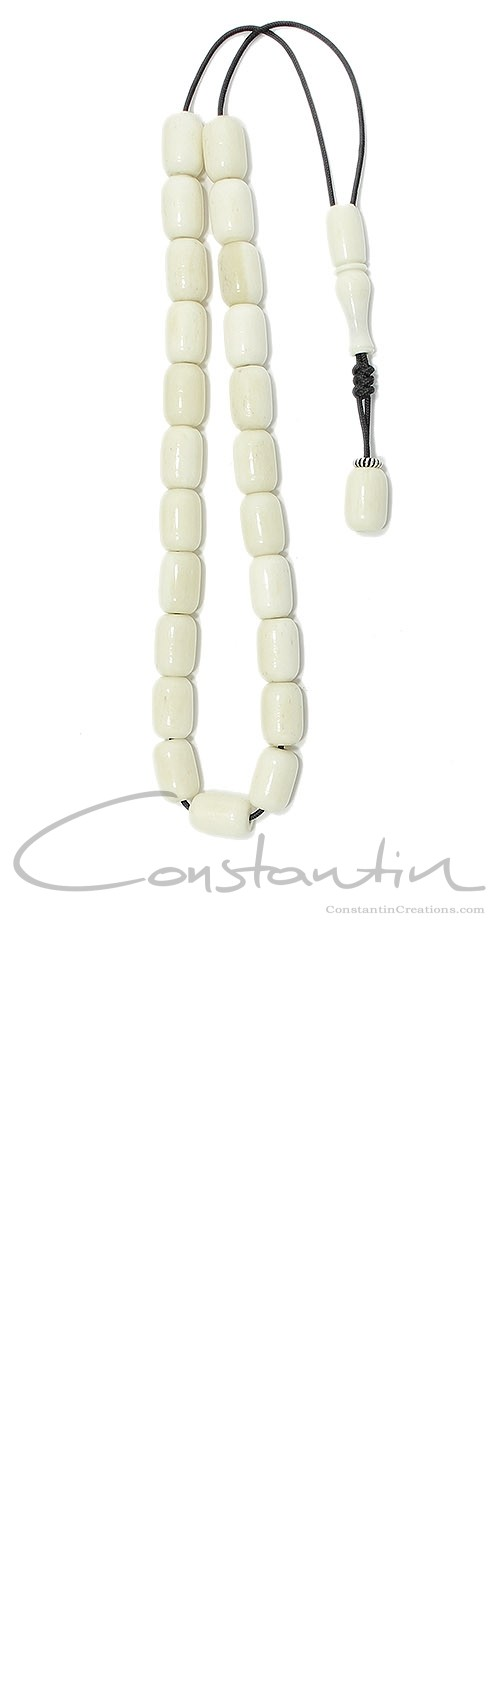 Pocket size, worry beads set made of natural Camel bone and silver.